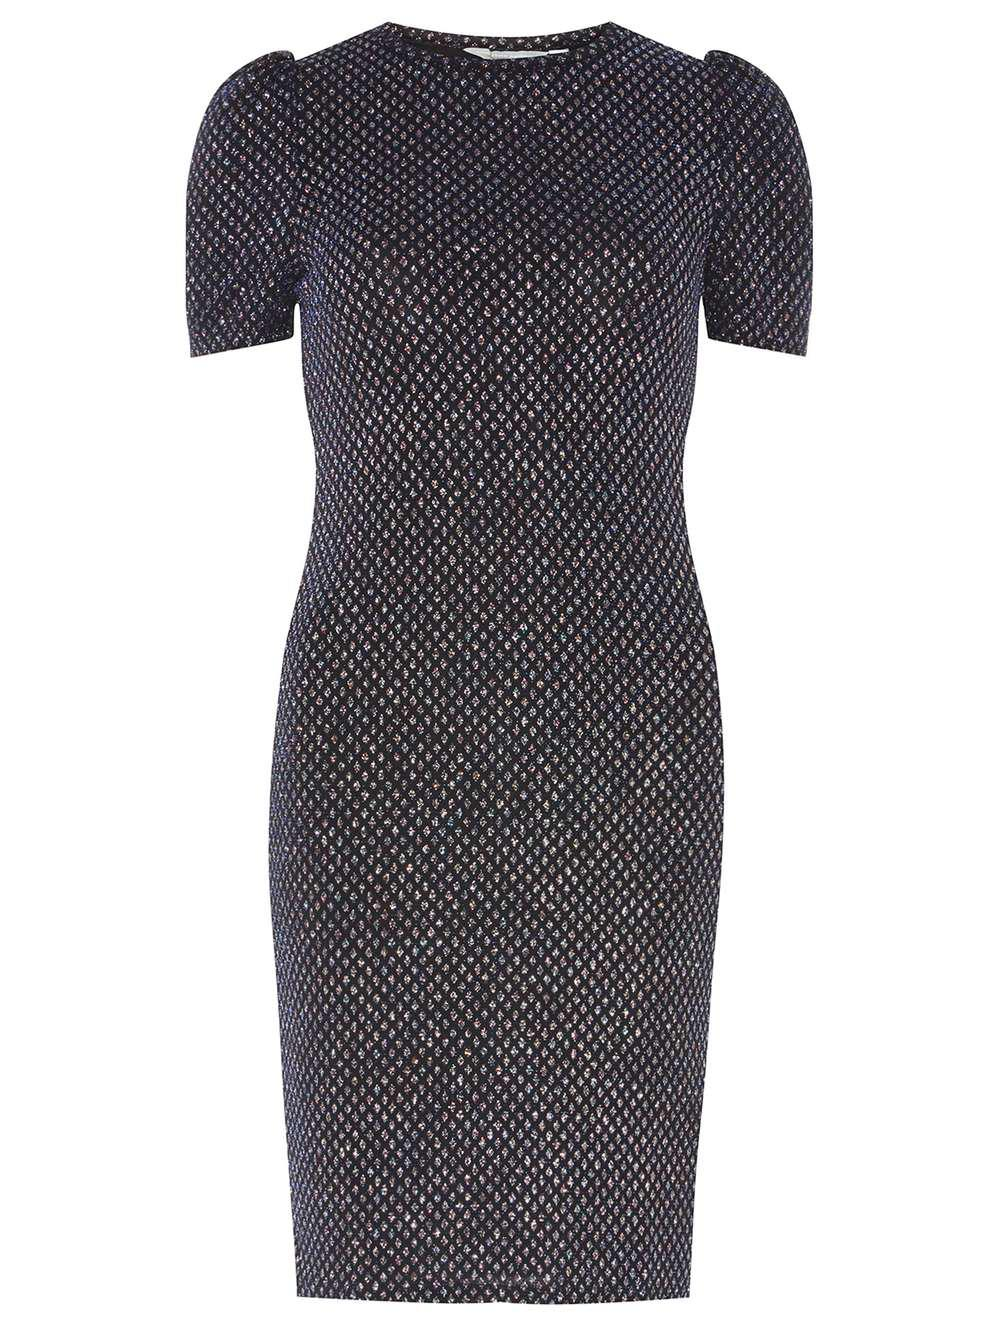 a859926245 Dorothy Perkins Petite Navy Diamond Glitter Bodycon Dress in Blue - Lyst